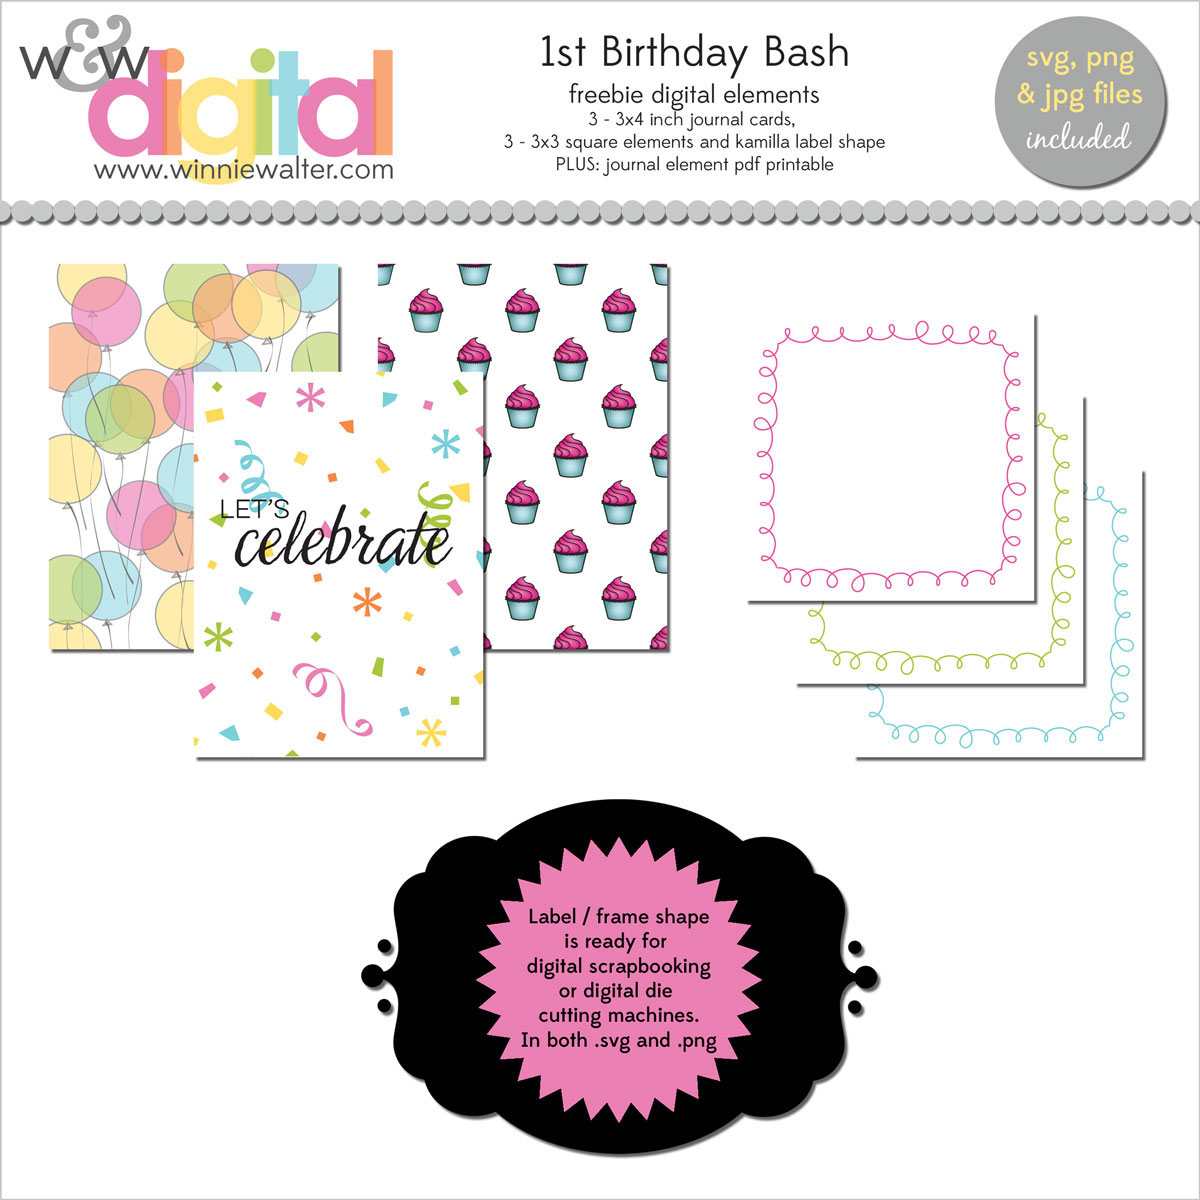 w&w_1stbdaybash_WEBfreebie_preview600